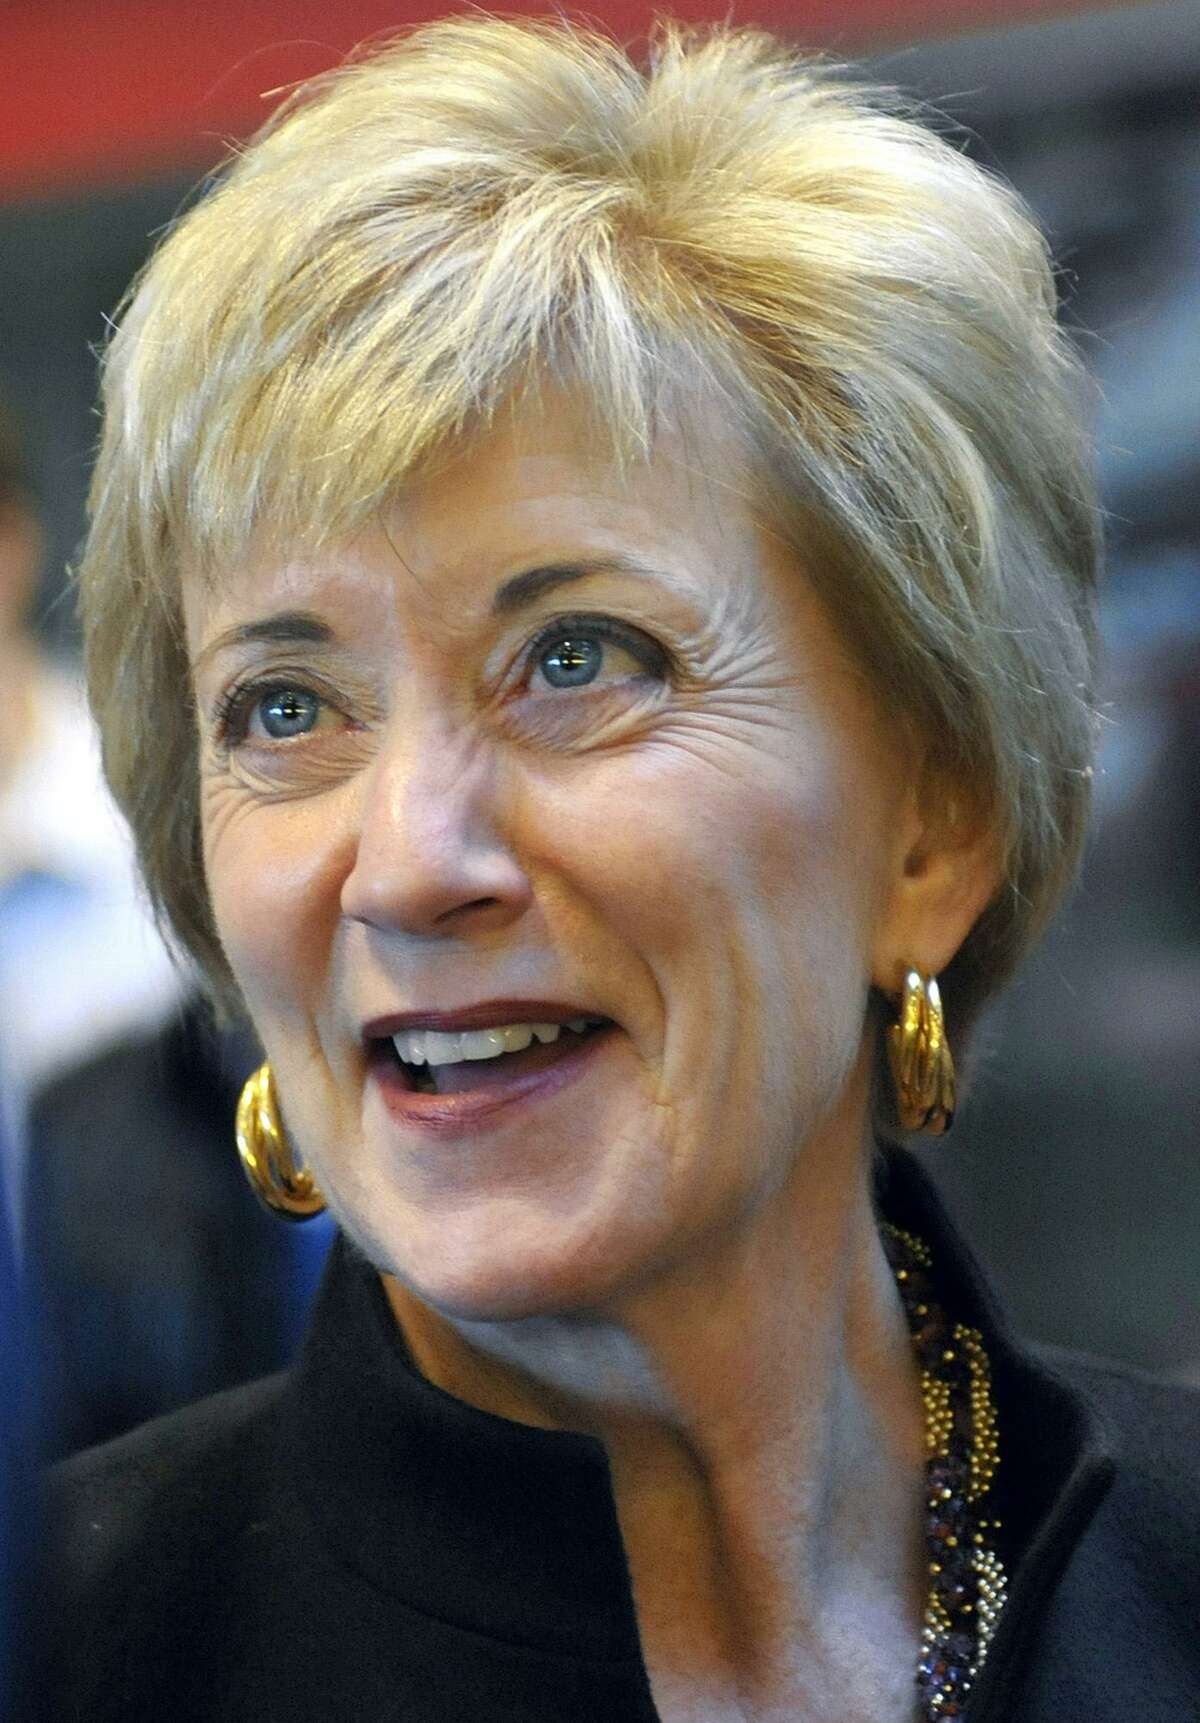 Some questionable things are happening since Linda McMahon left the Small Business Administration.